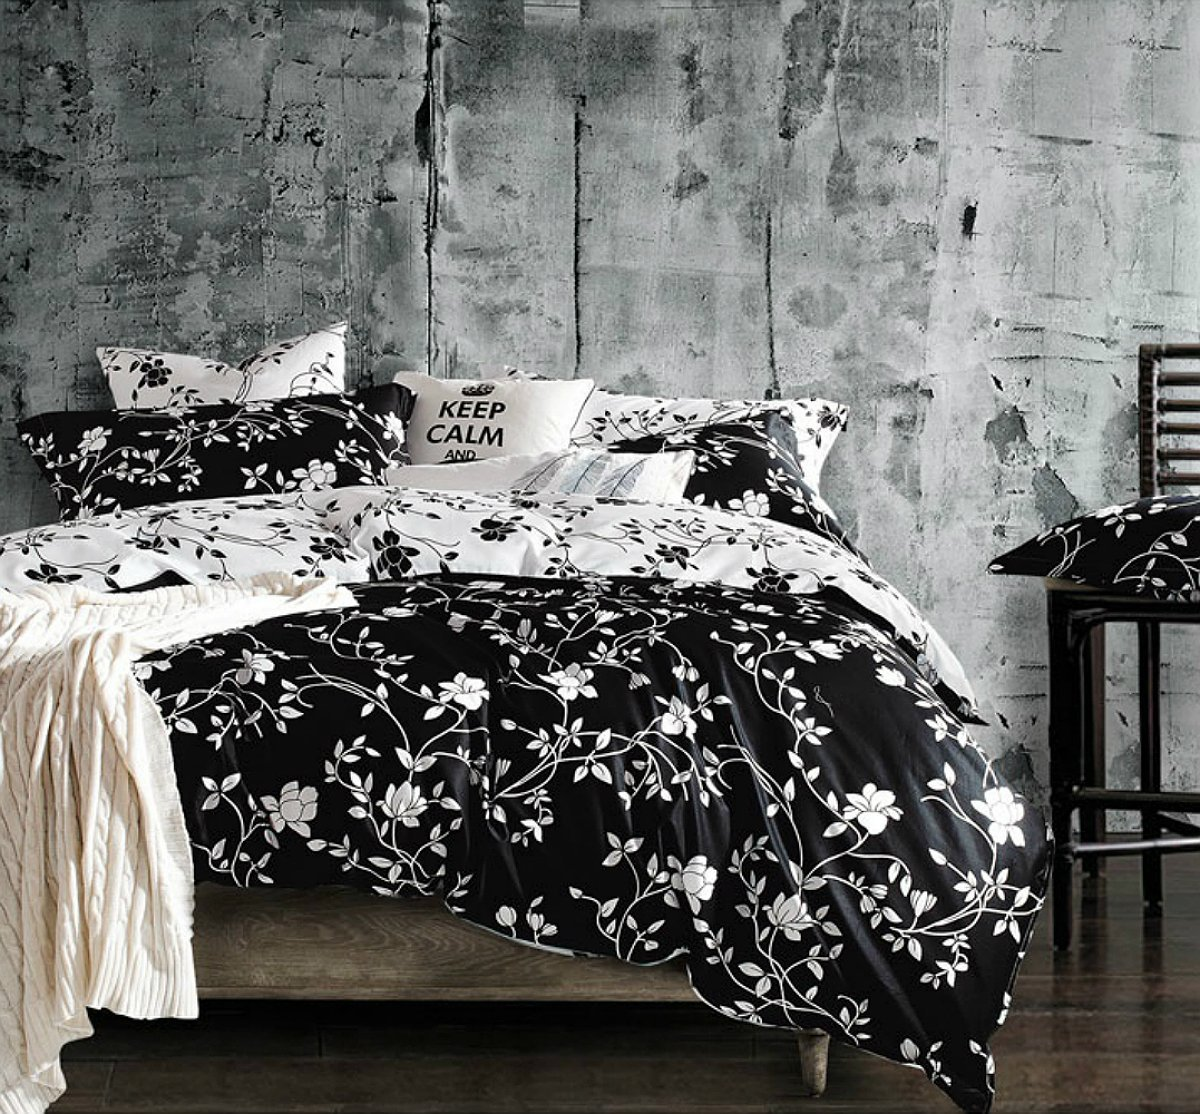 black and white bedding sets that will make your room look great